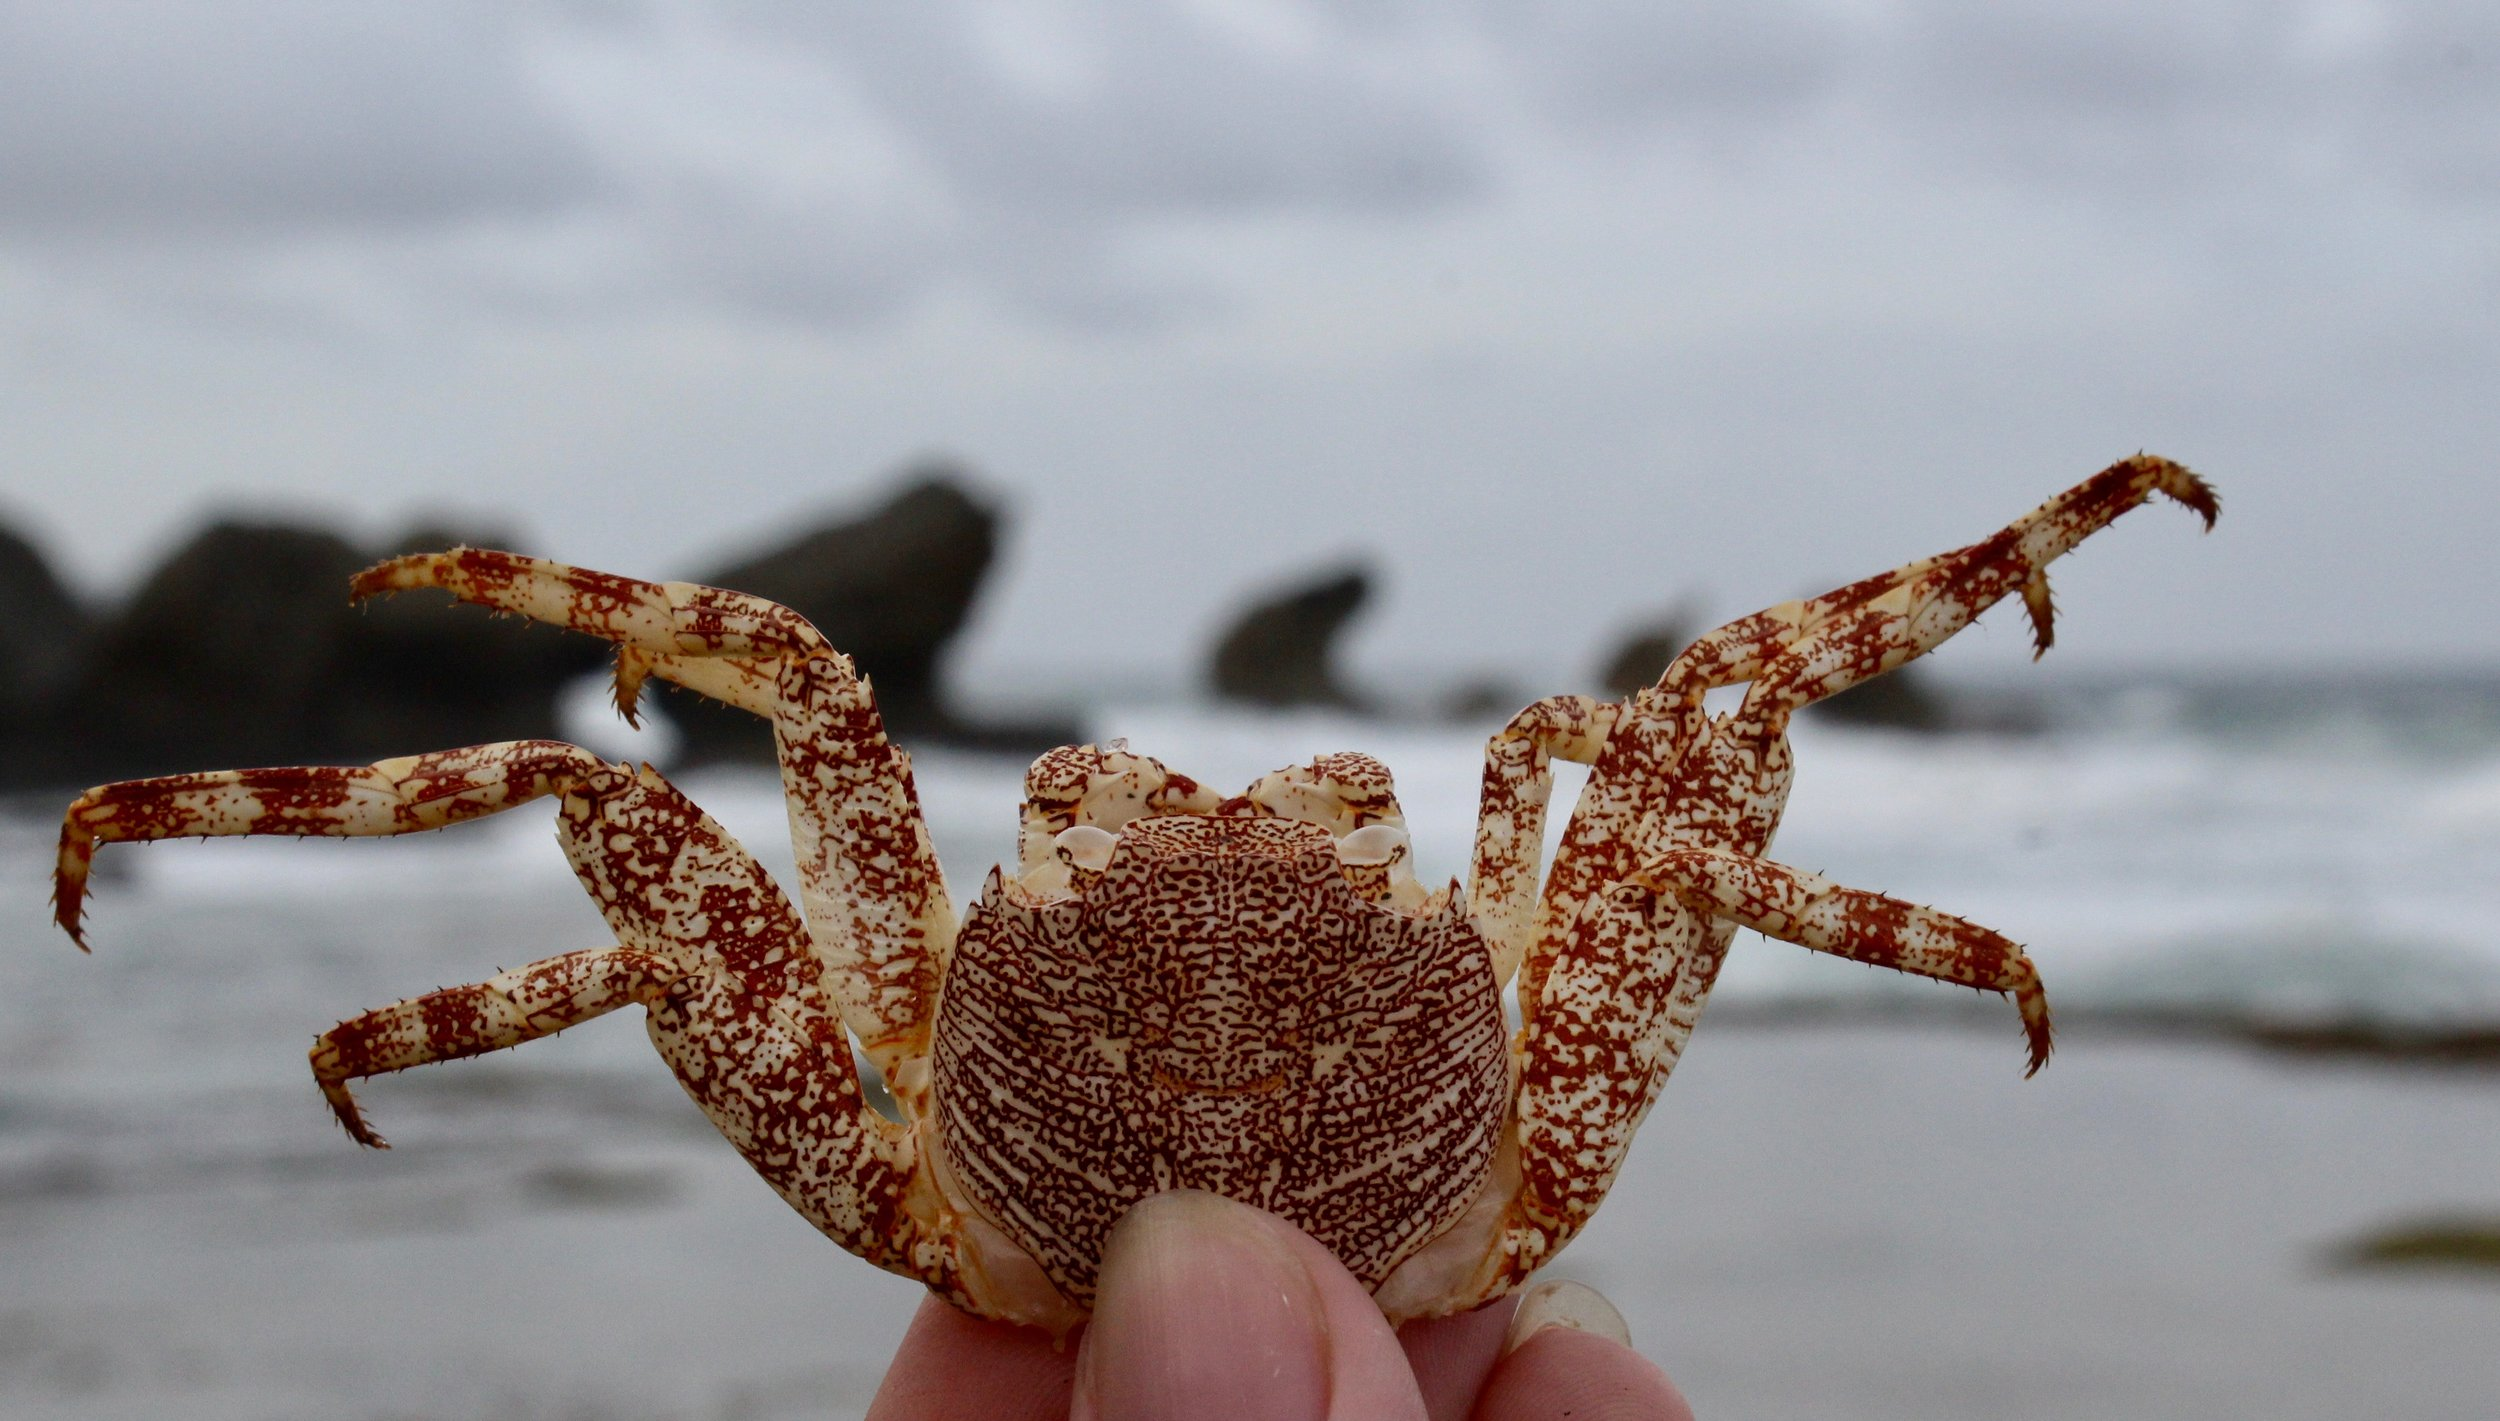 Crab shell, rocks eroded by waves in the background